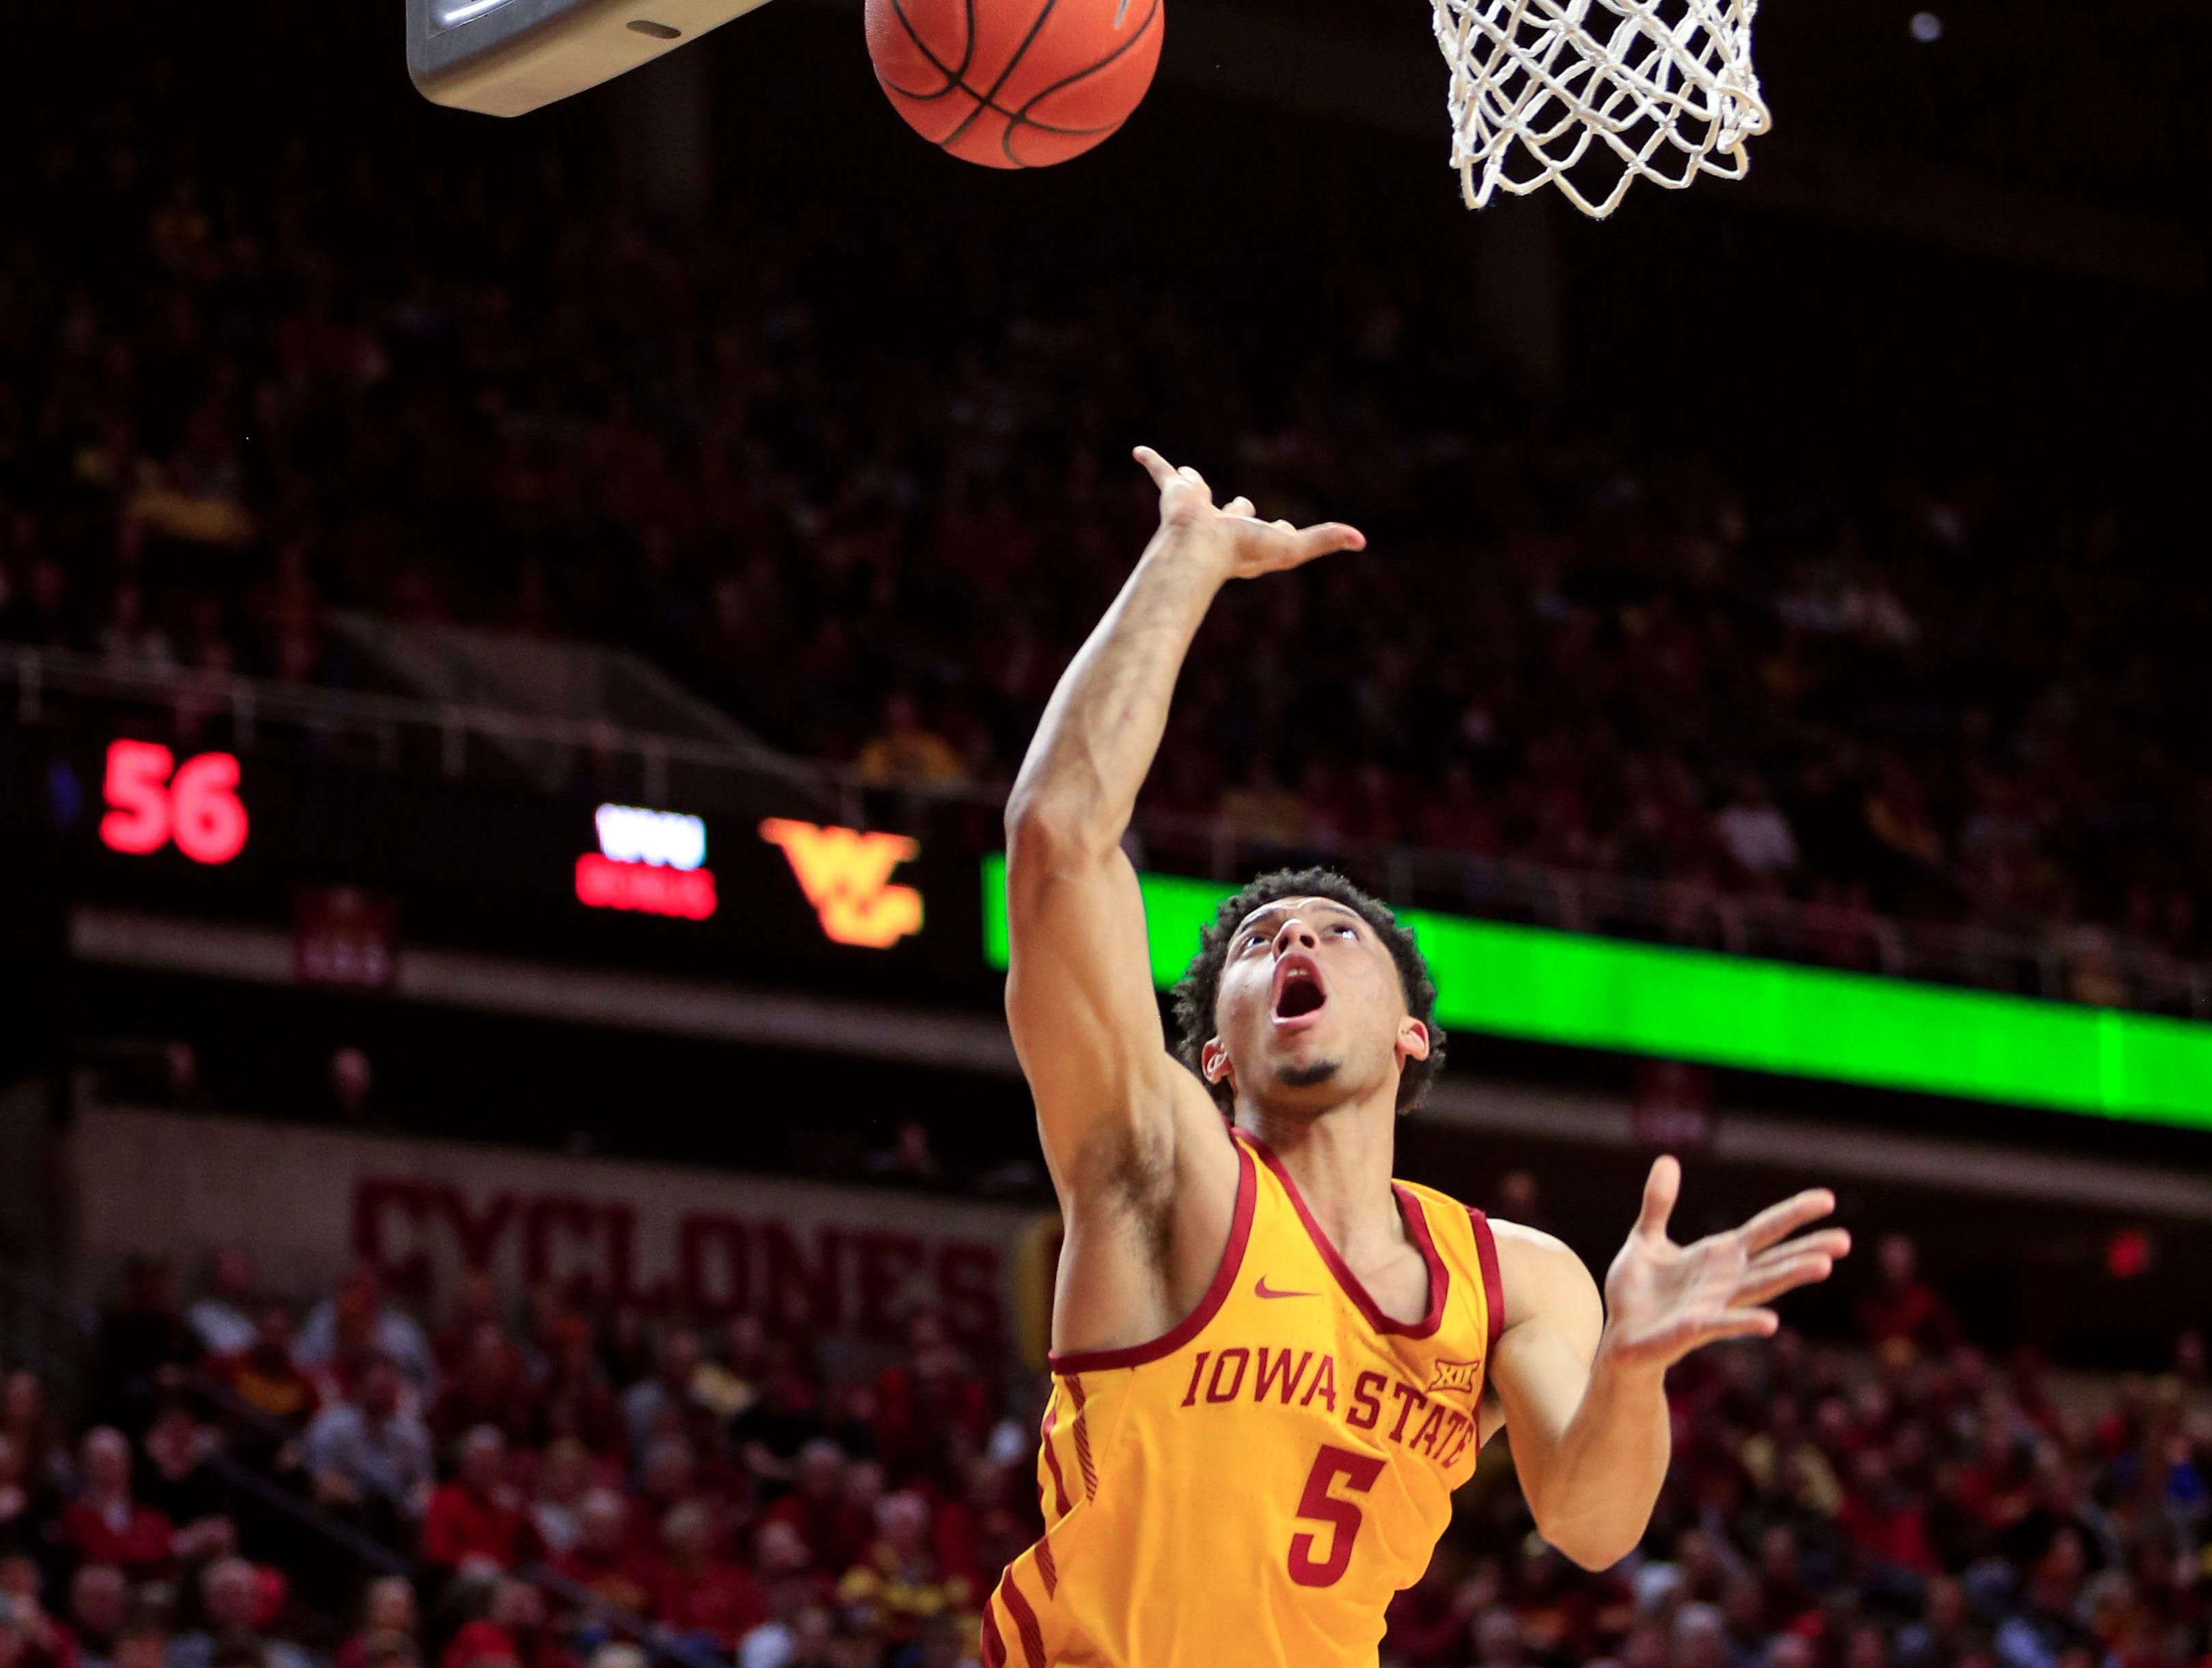 Iowa State's Lindell Wigginton drives to the basket during a game against West Virginia at Hilton Coliseum Wednesday, Jan. 30, 2019.